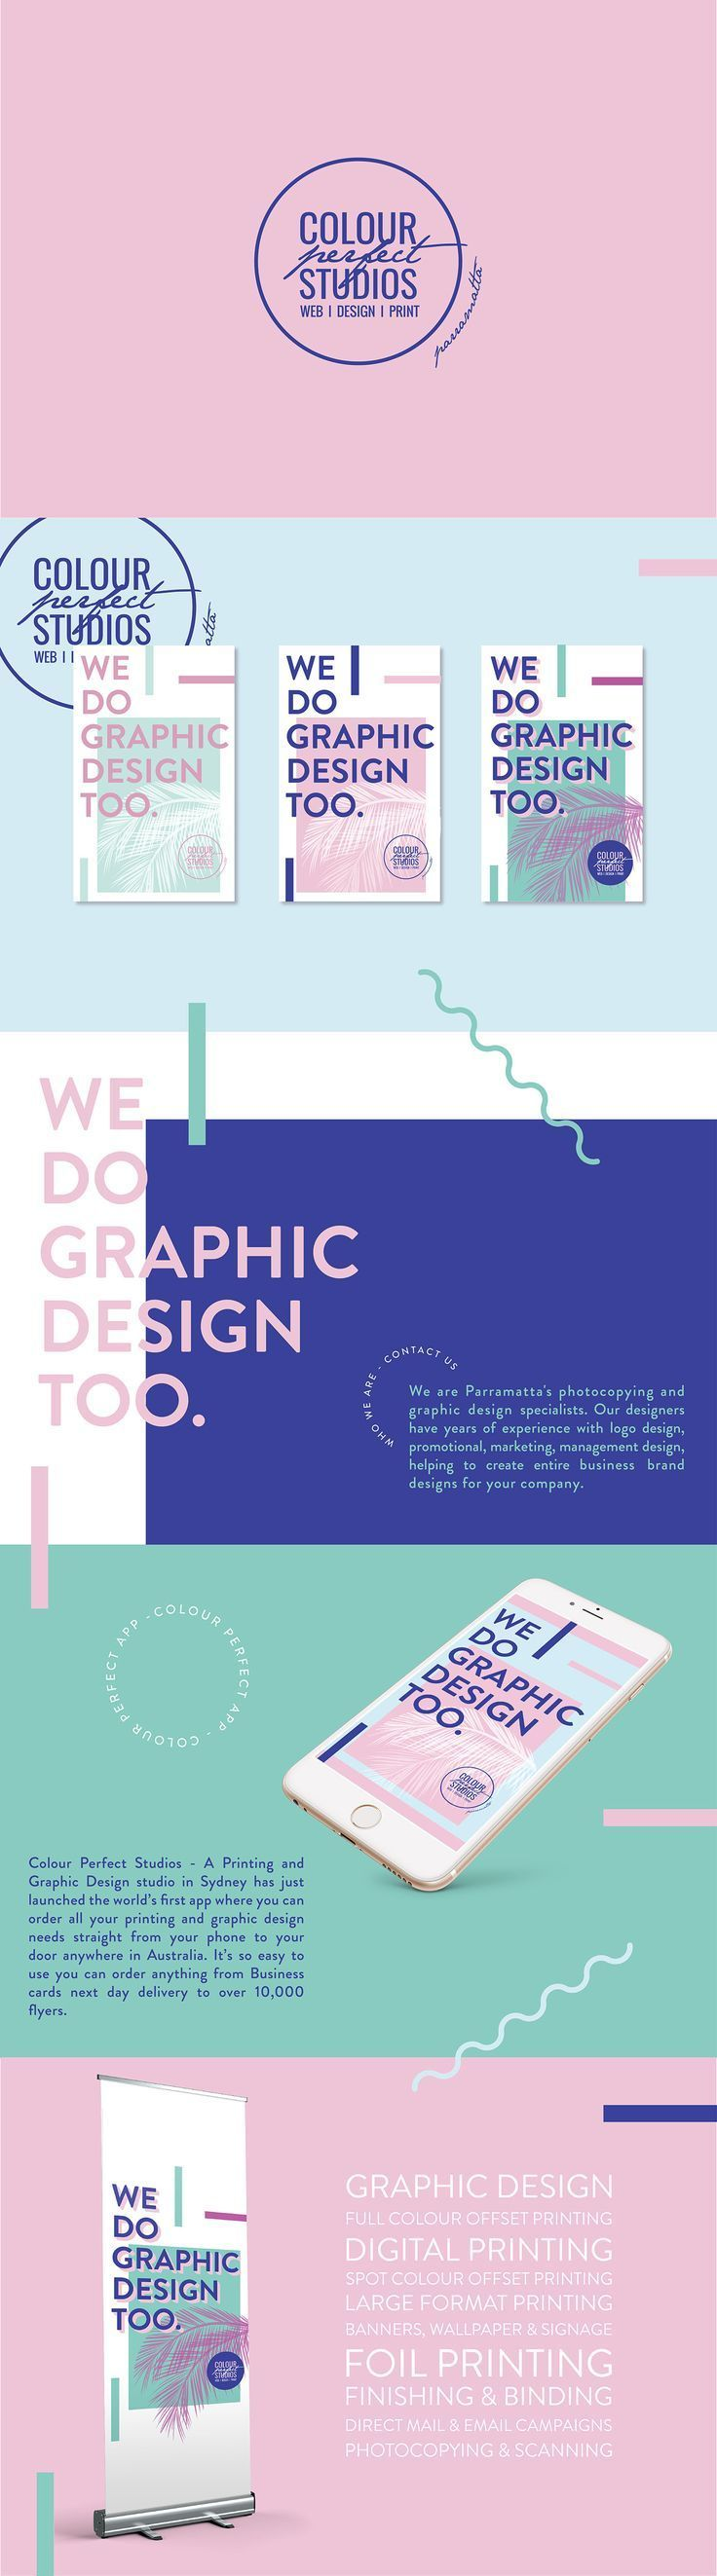 Graphic Design Branding We Do Graphic Design Too On Behance Graphic Design Presentation Design Graphic Design Branding